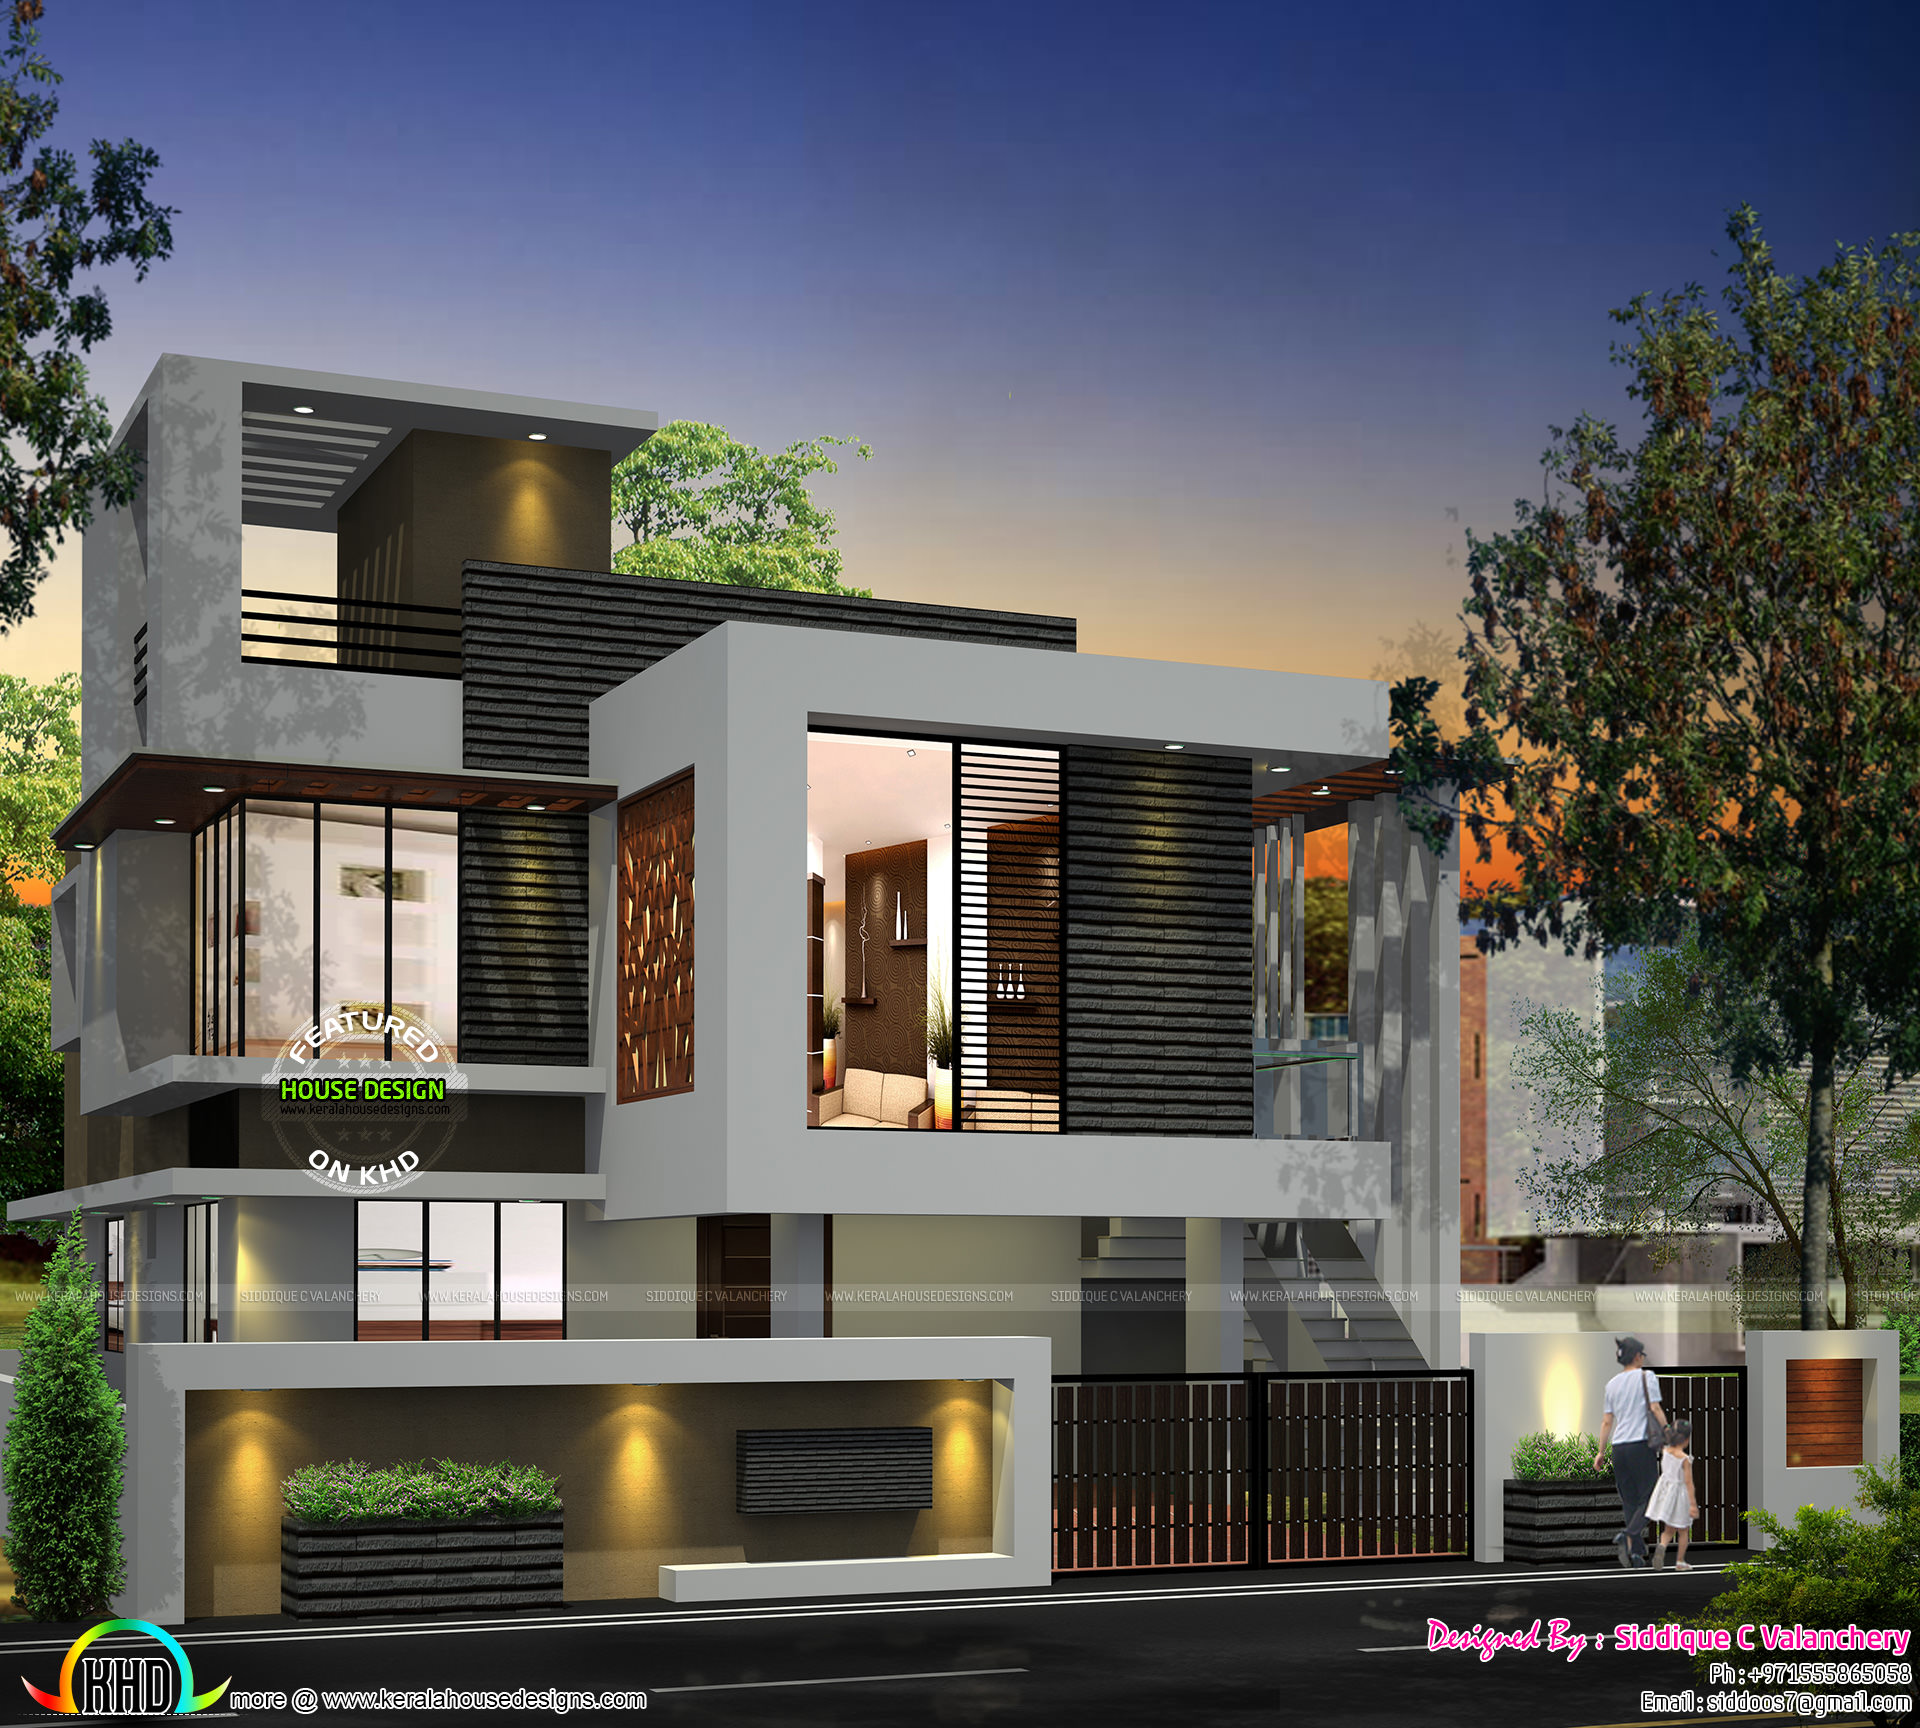 Single floor turning to a double floor home kerala home design and floor plans - Contemporary home design ...